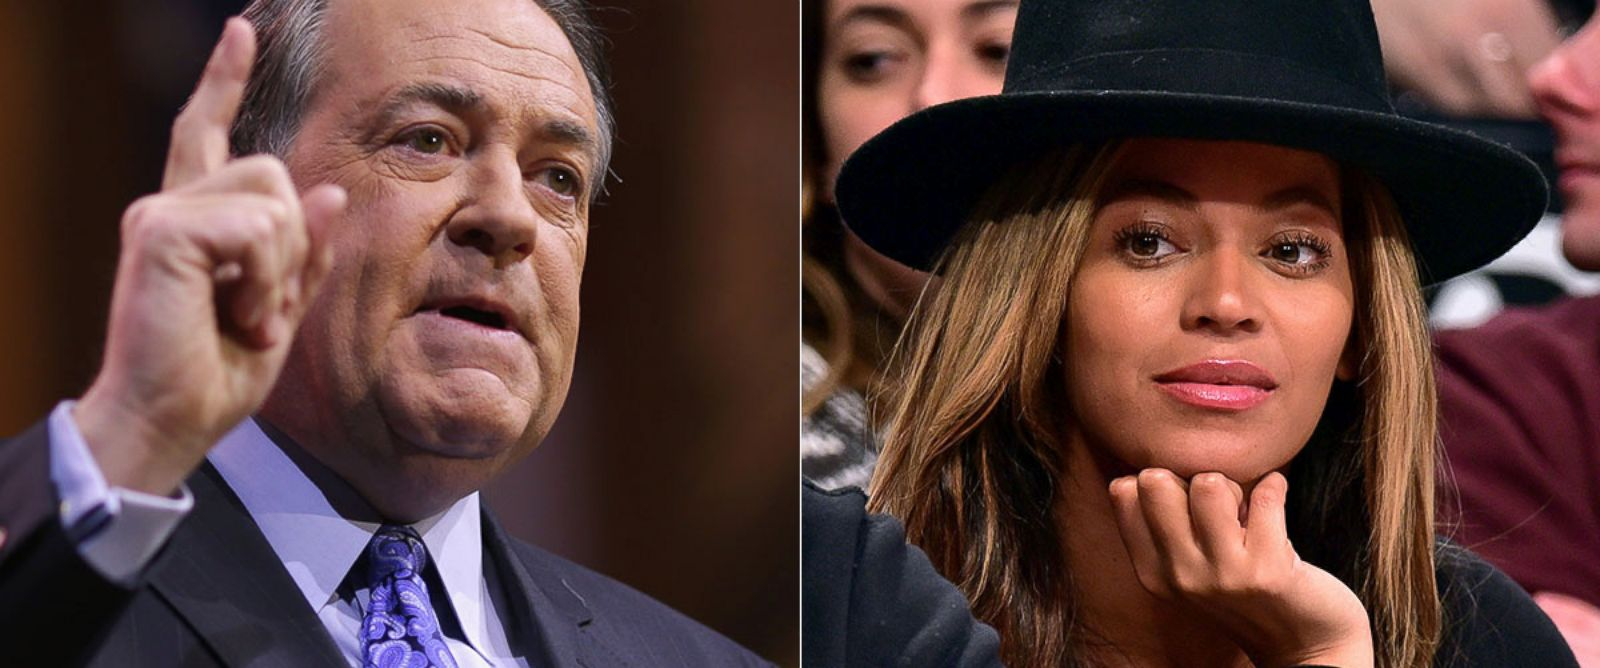 PHOTO: Former Arkansas Governor Mike Huckabee speaks at the Conservative Political Action Conference, March 7, 2014, in National Harbor, Md; Beyonce Knowles attends the Houston Rockets vs Brooklyn Nets game at Barclays Center, Jan. 12, 2015, in New York.